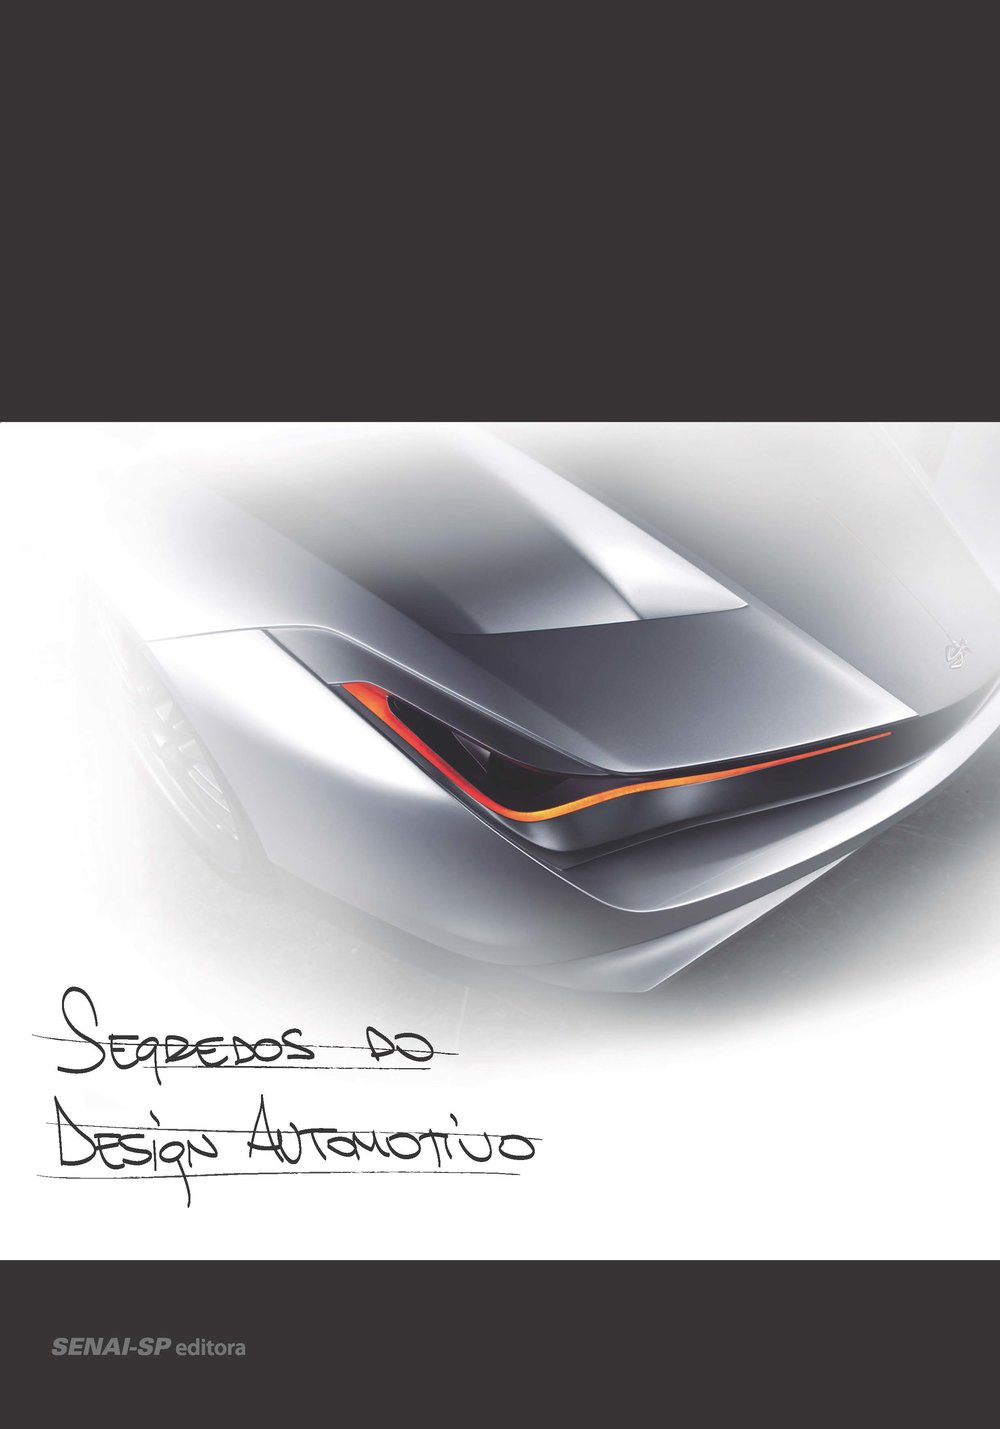 Segredos_do_design_automotivo_capa.jpg